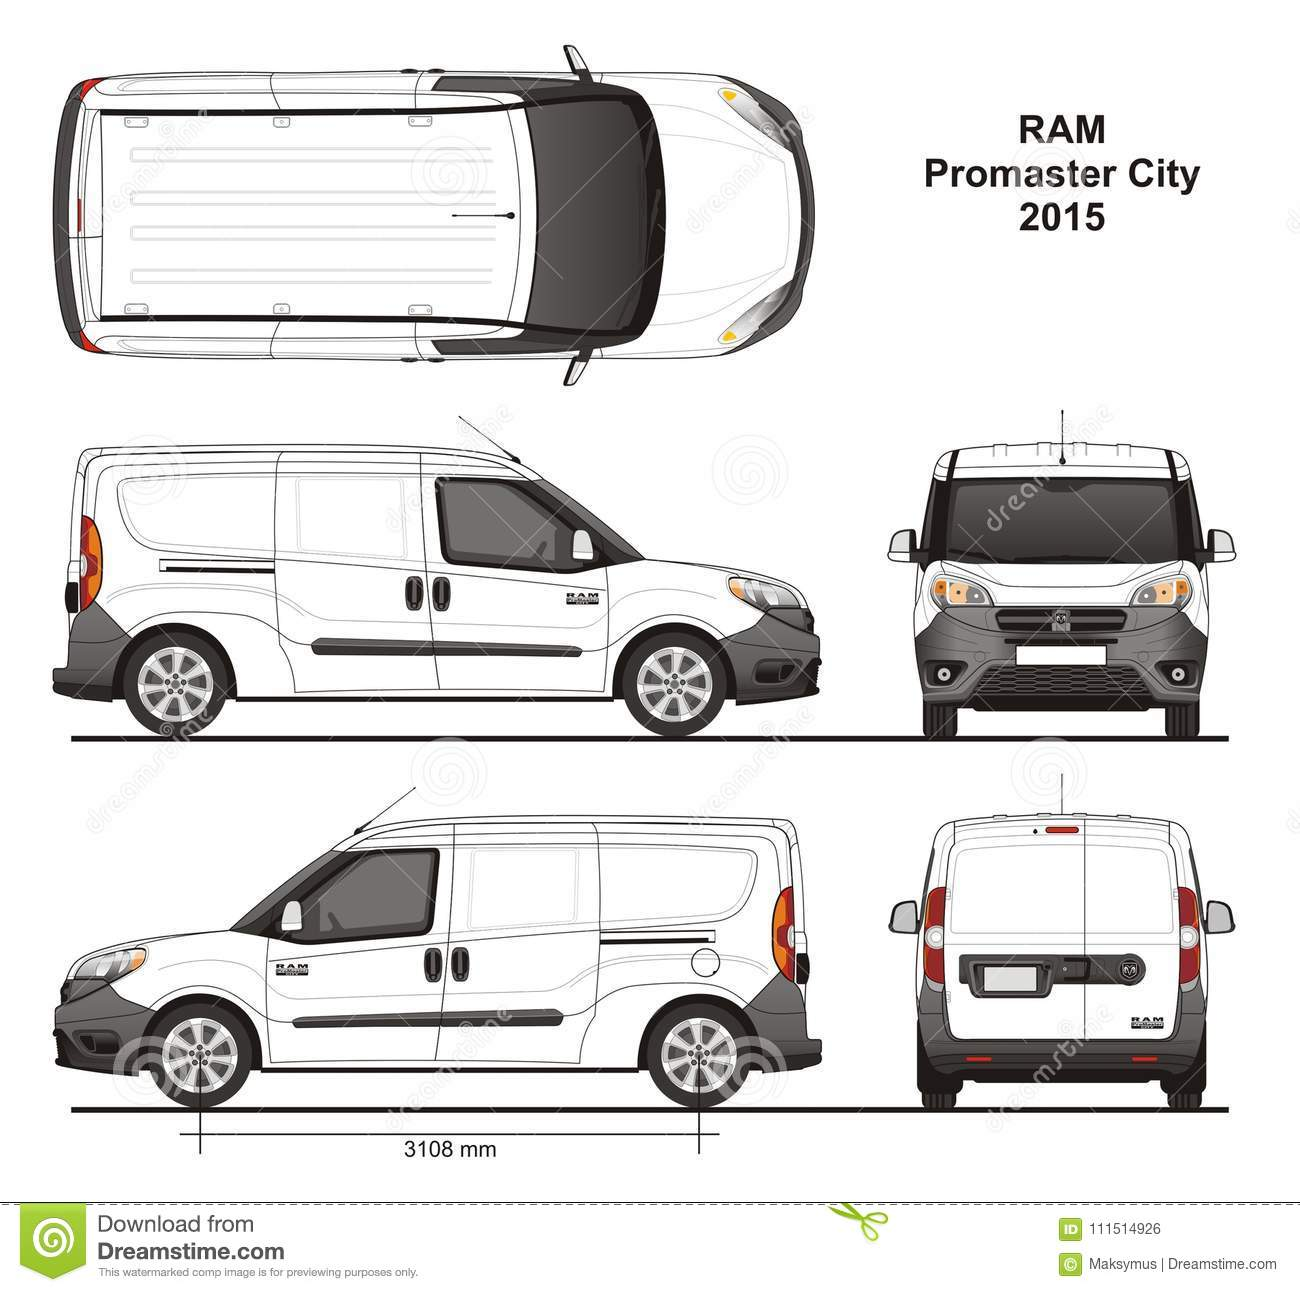 2018 Ram Promaster Cargo Van Camshaft: Ram Promaster City Cargo Delivery Van 2015 Editorial Photo